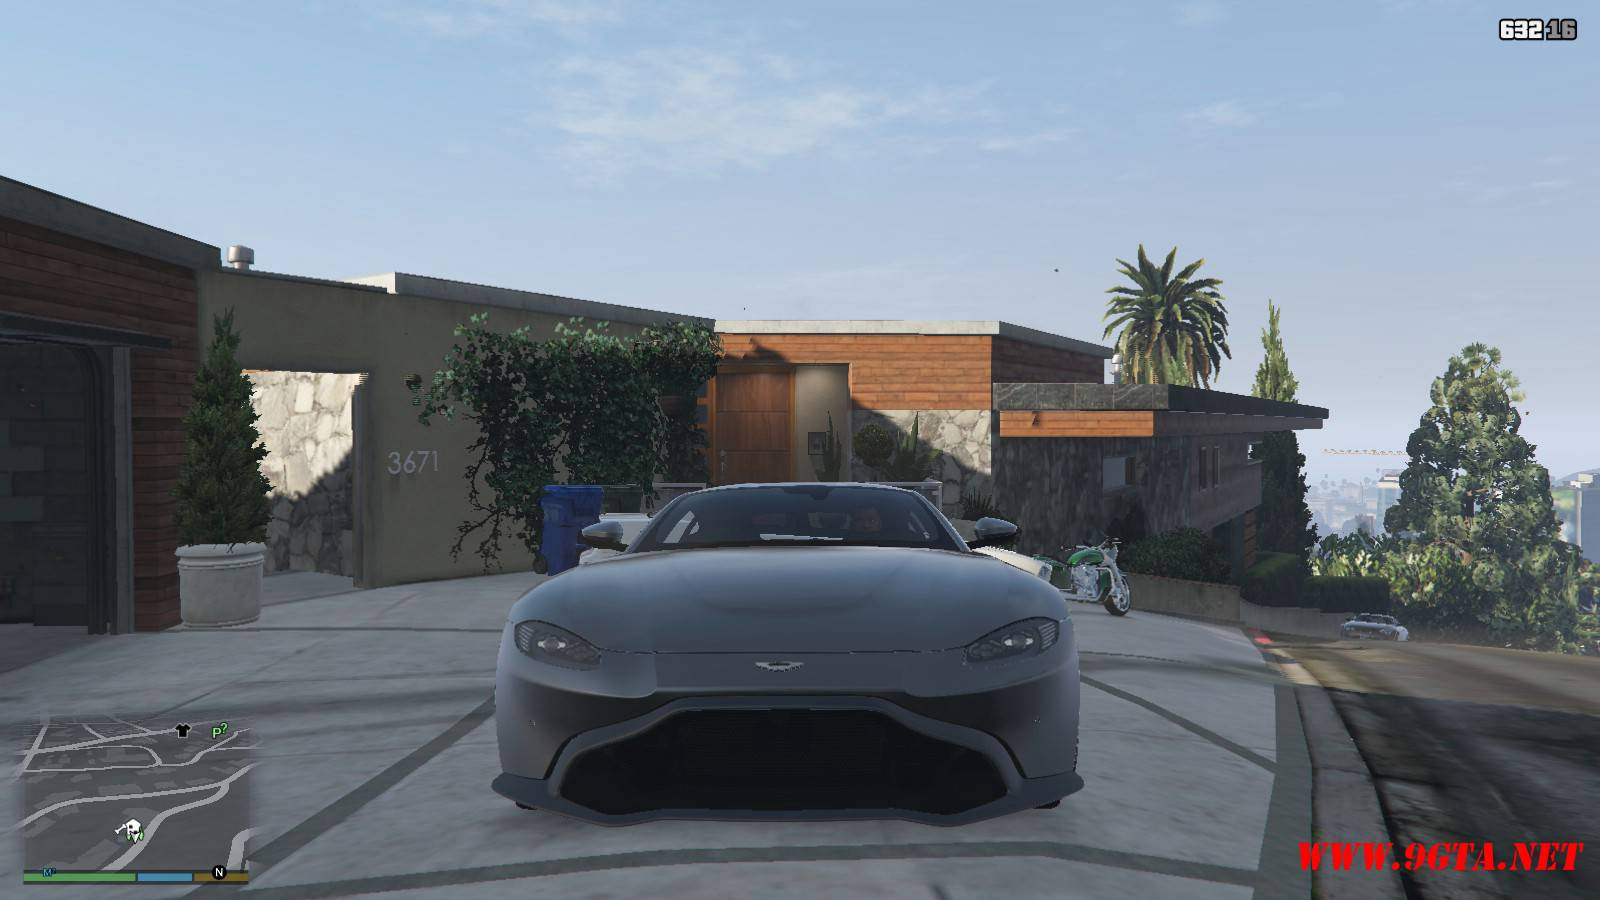 2019 Aston Martin Vantage v3.0 Mod For GTA5 (11)